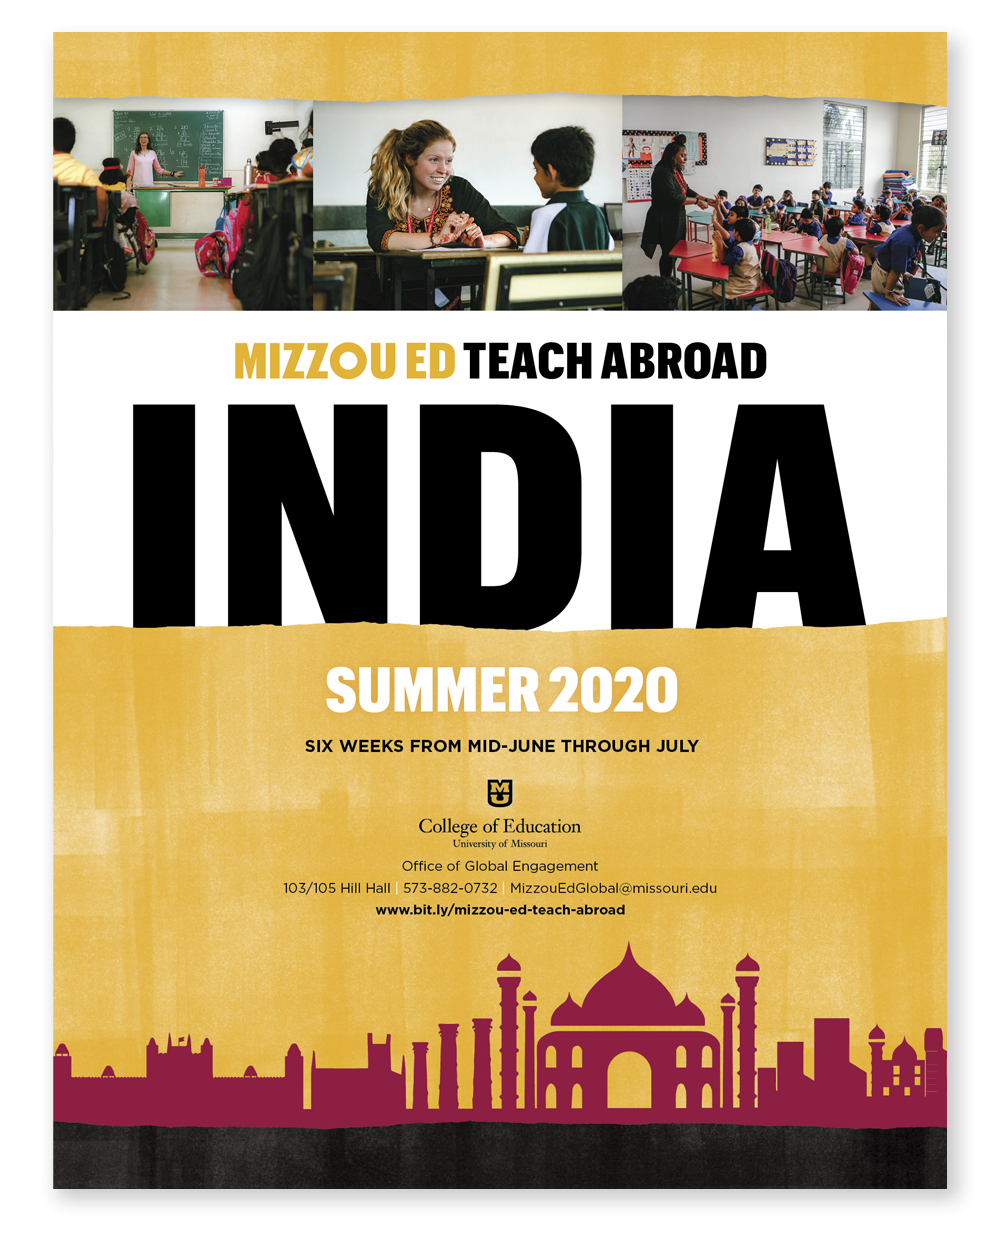 Teach Abroad India brochure cover, University of Missouri College of Education, Office of Global Engagement